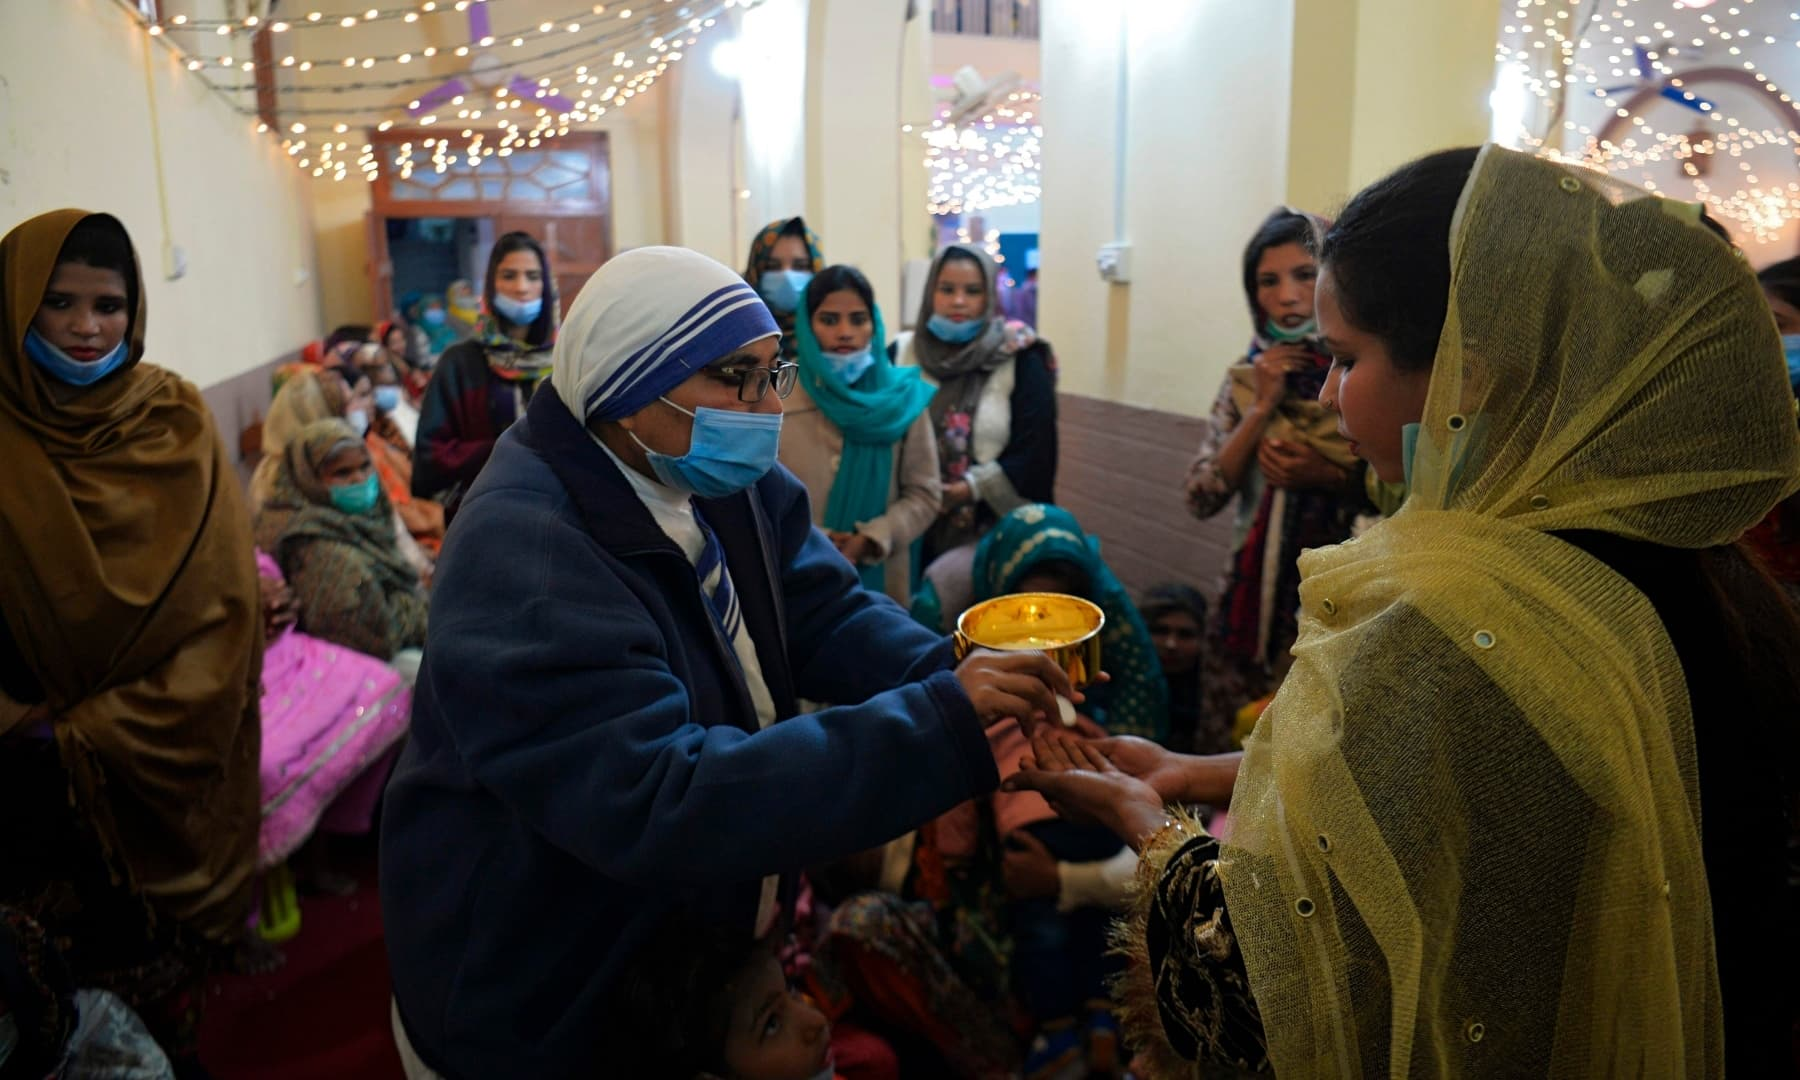 A nun wearing a facemask distributes holy communion to devotees during Christmas prayers at the Holy Family Catholic Church in Rawalpindi on December 25. — AFP